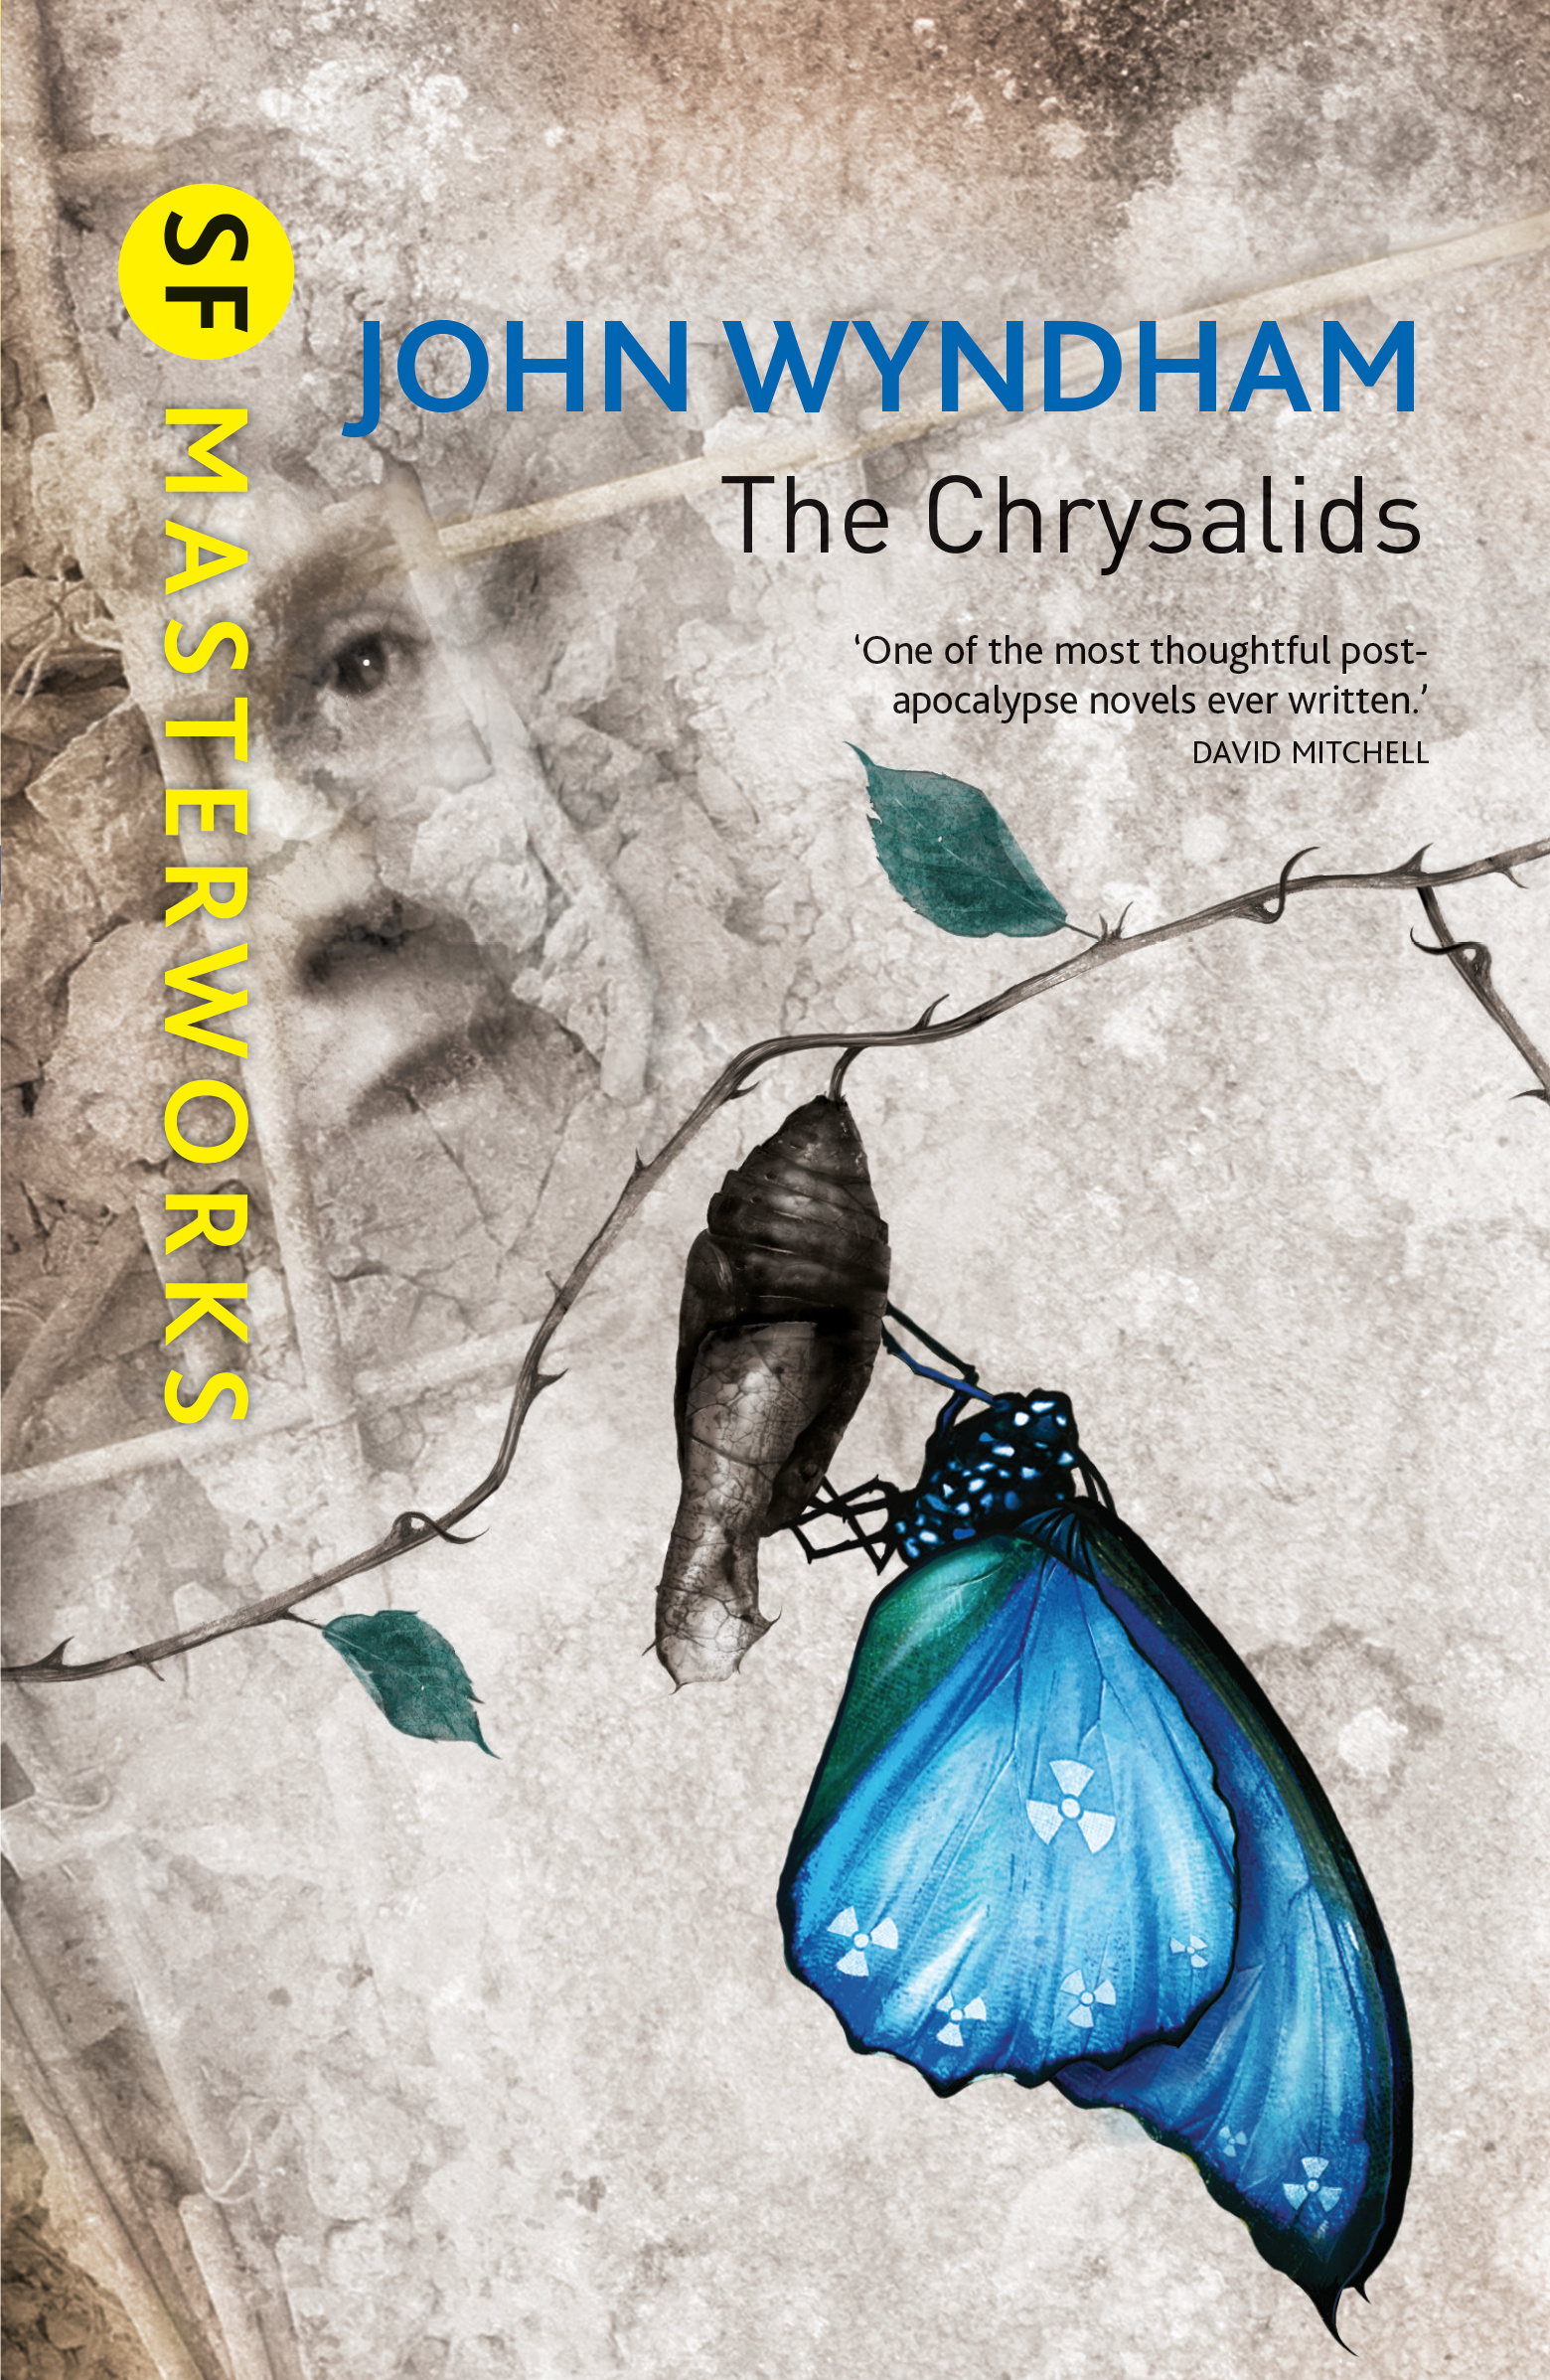 the importance of change and evolution in the chrysalids a novel by john wyndham